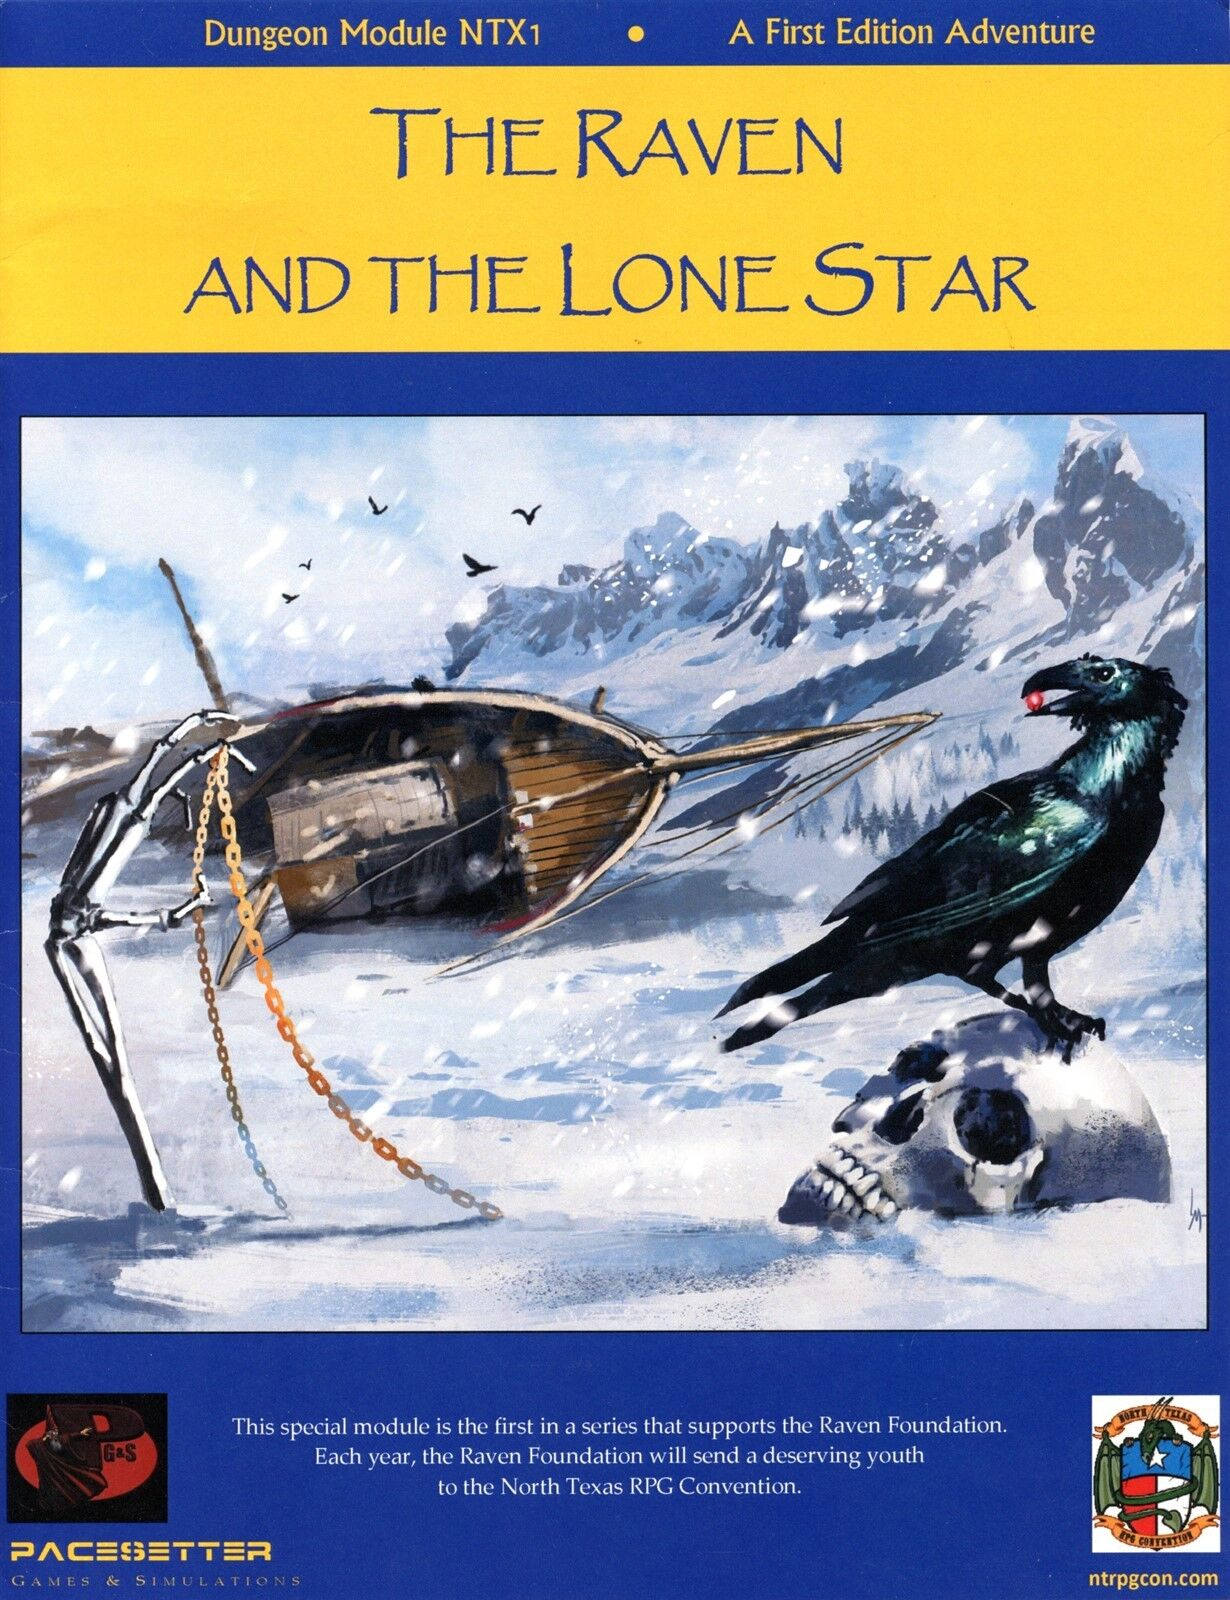 THE RAVEN AND THE LONE STAR NTX1 PACESETTER FANTASY RPG VF